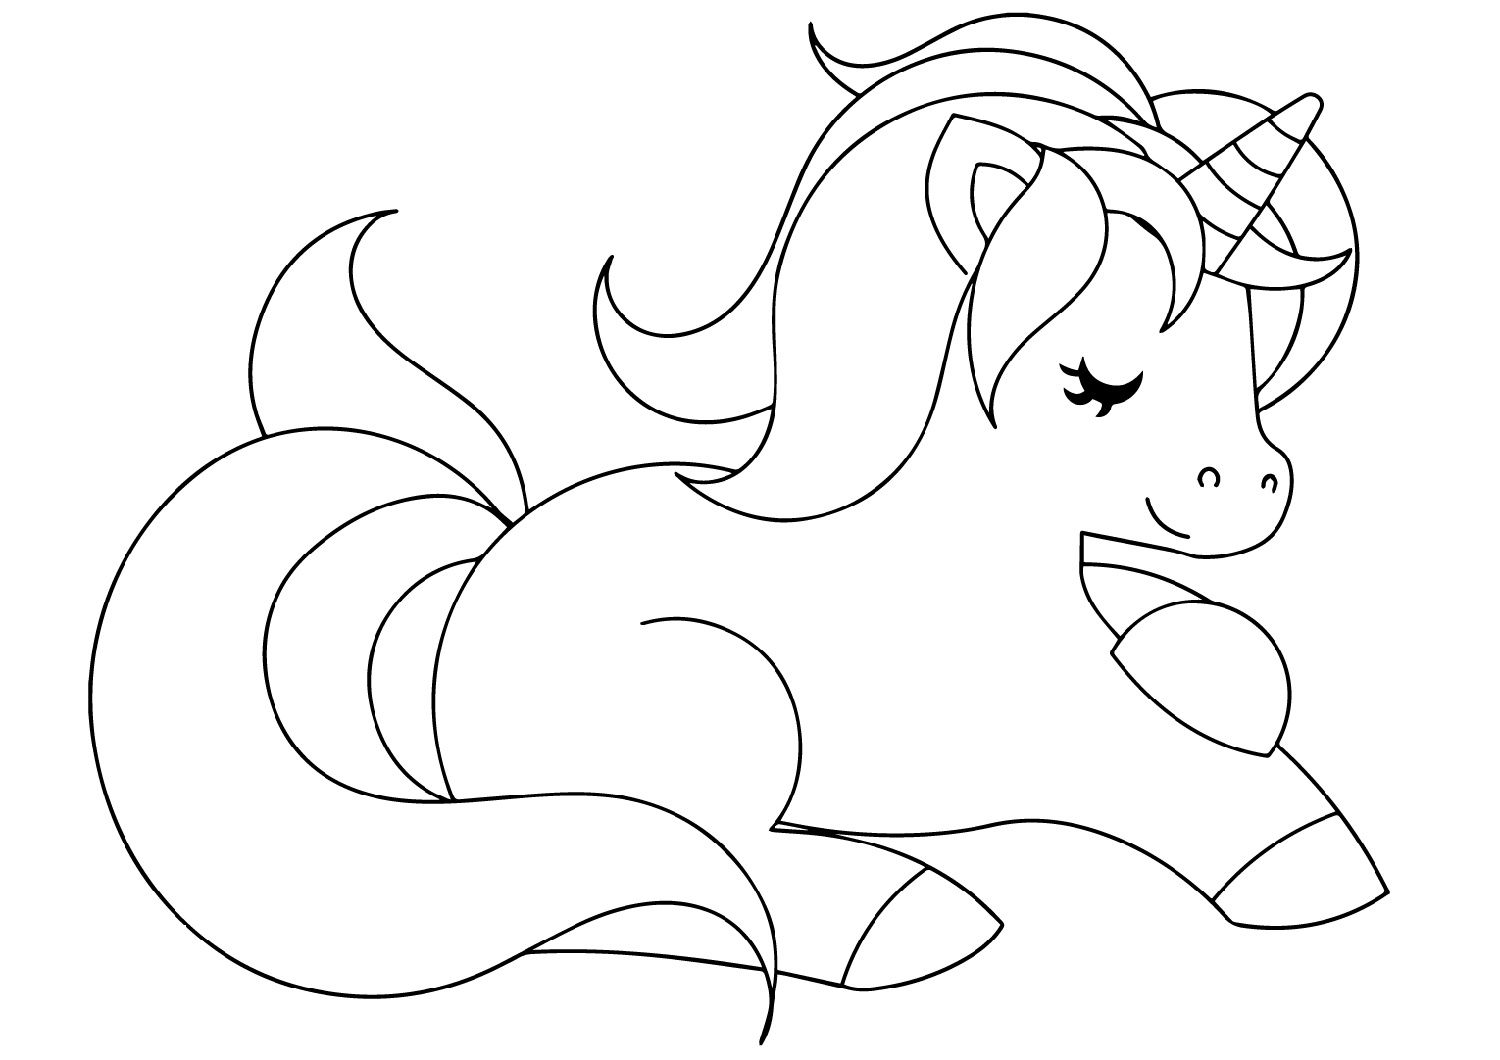 Baby Unicorn Coloring Pages For Kindergarten K5 Worksheets Coloring Pages Unicorn Coloring Pages Easy Coloring Pages